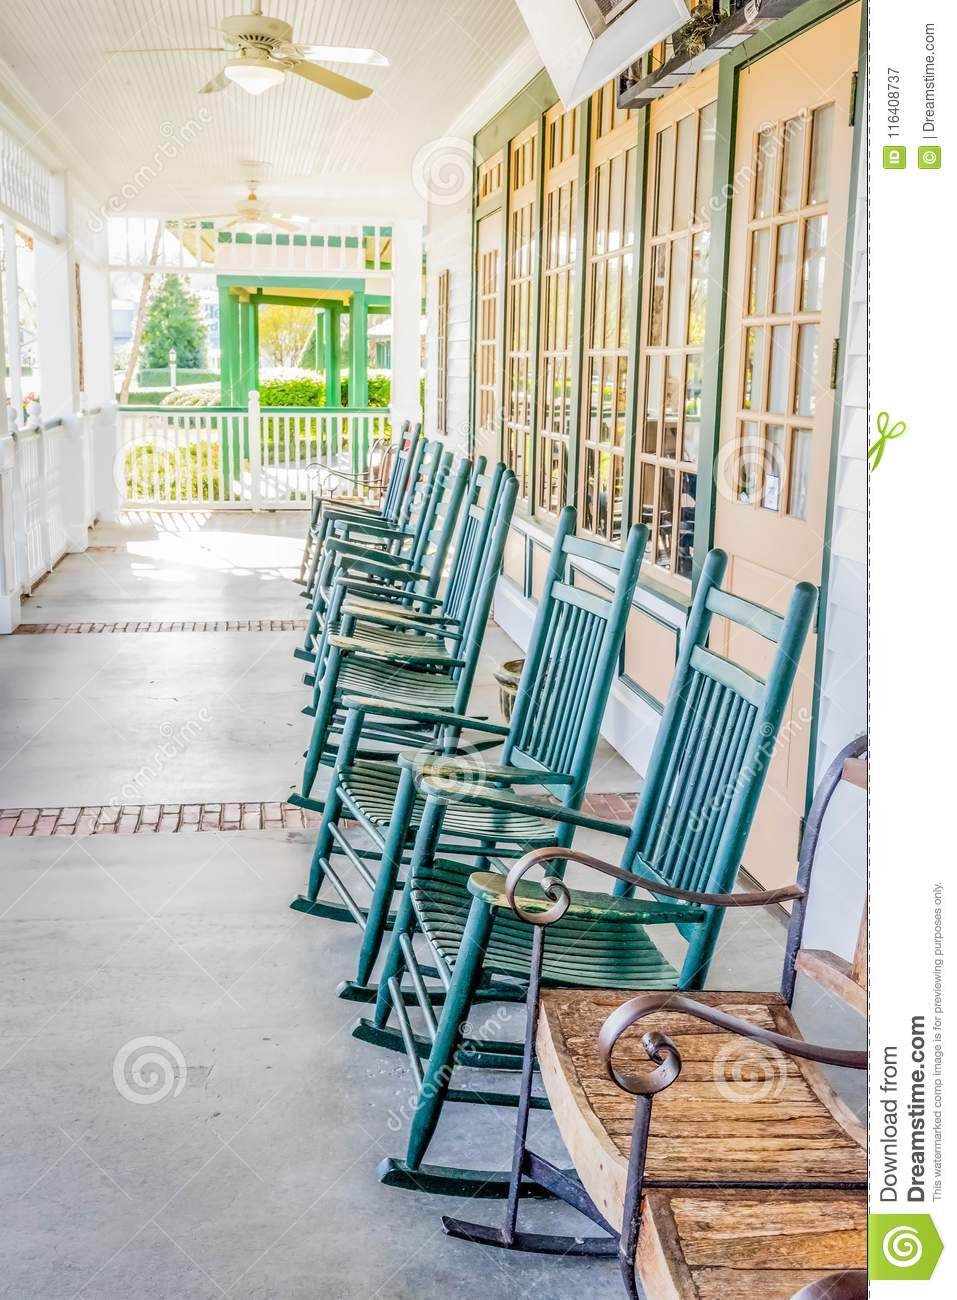 Remarkable Rocking Chair Row Stock Image Image Of Elderly Southern Gmtry Best Dining Table And Chair Ideas Images Gmtryco